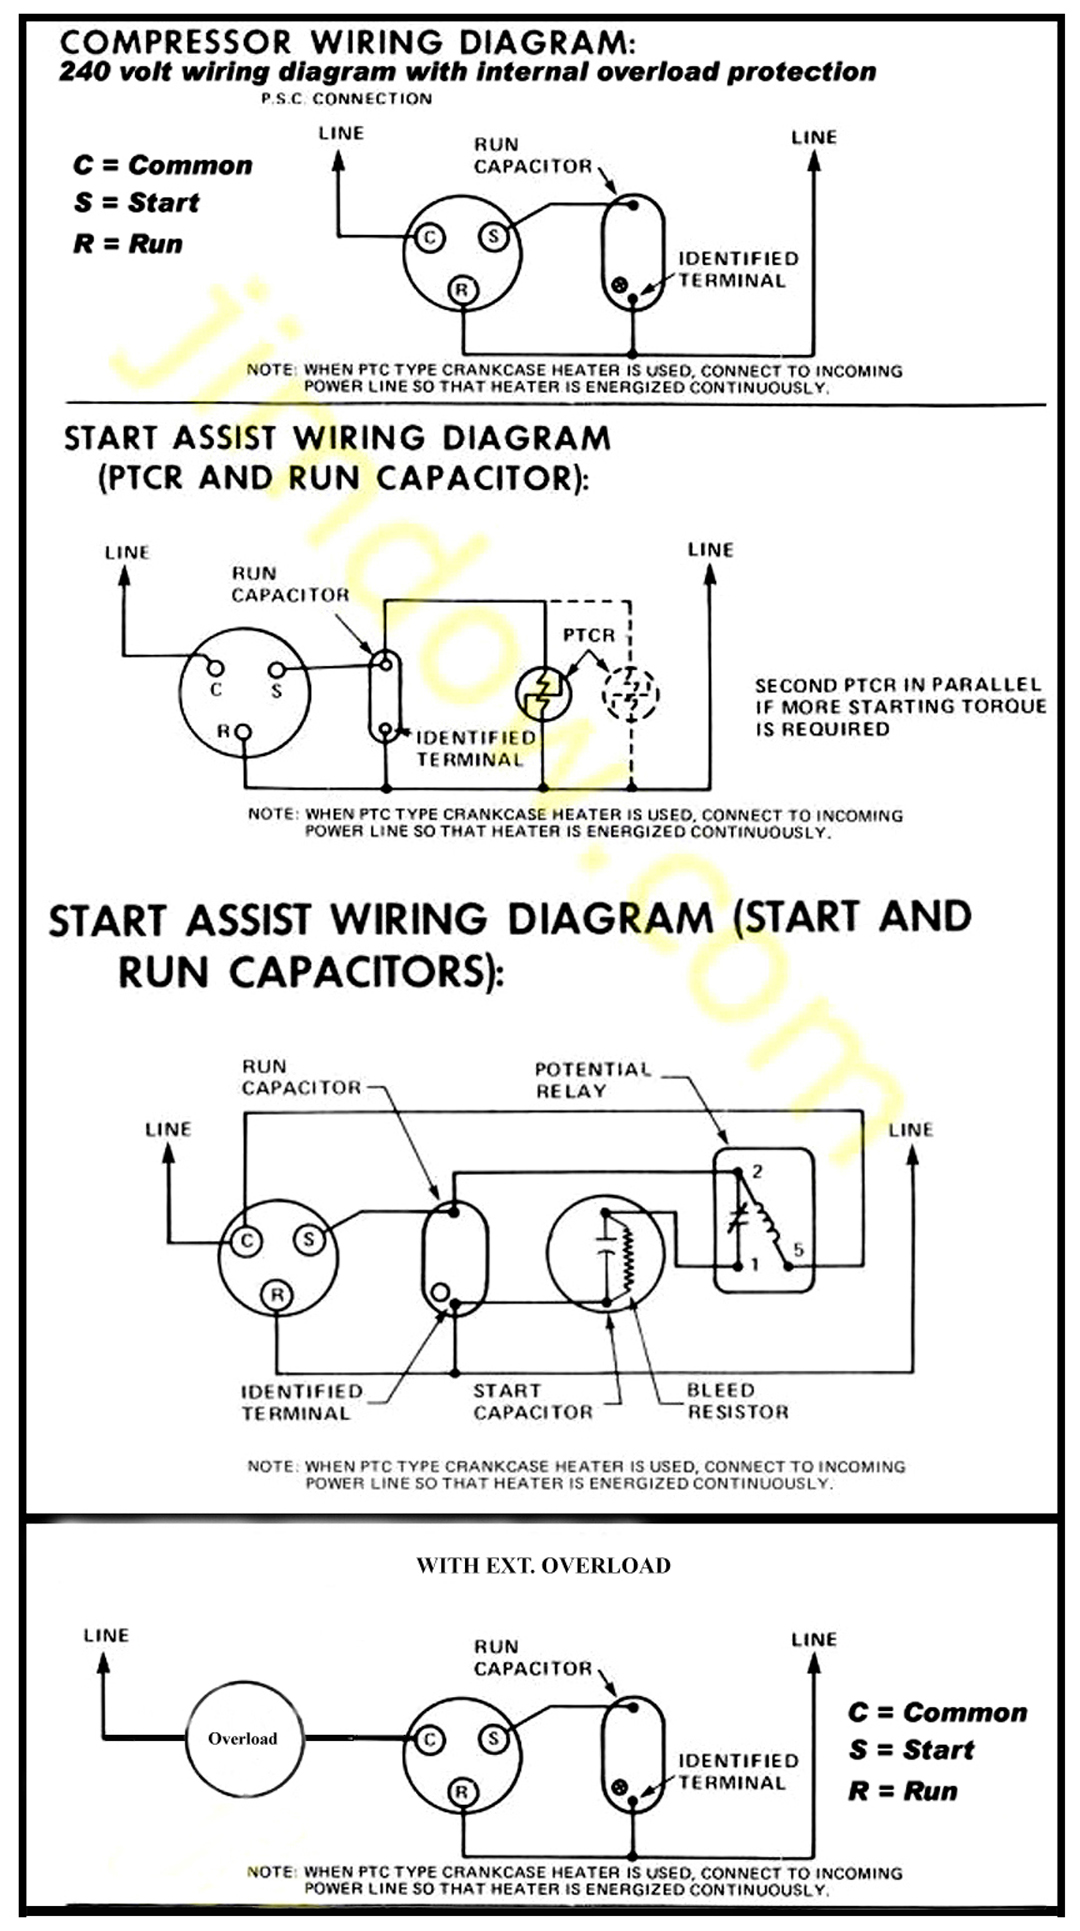 Ac compressor wire diagram wiring diagrams schematics air conditioner compressor wiring general spud cannon related rh spudfiles com at ac compressor wire diagram cheapraybanclubmaster Image collections